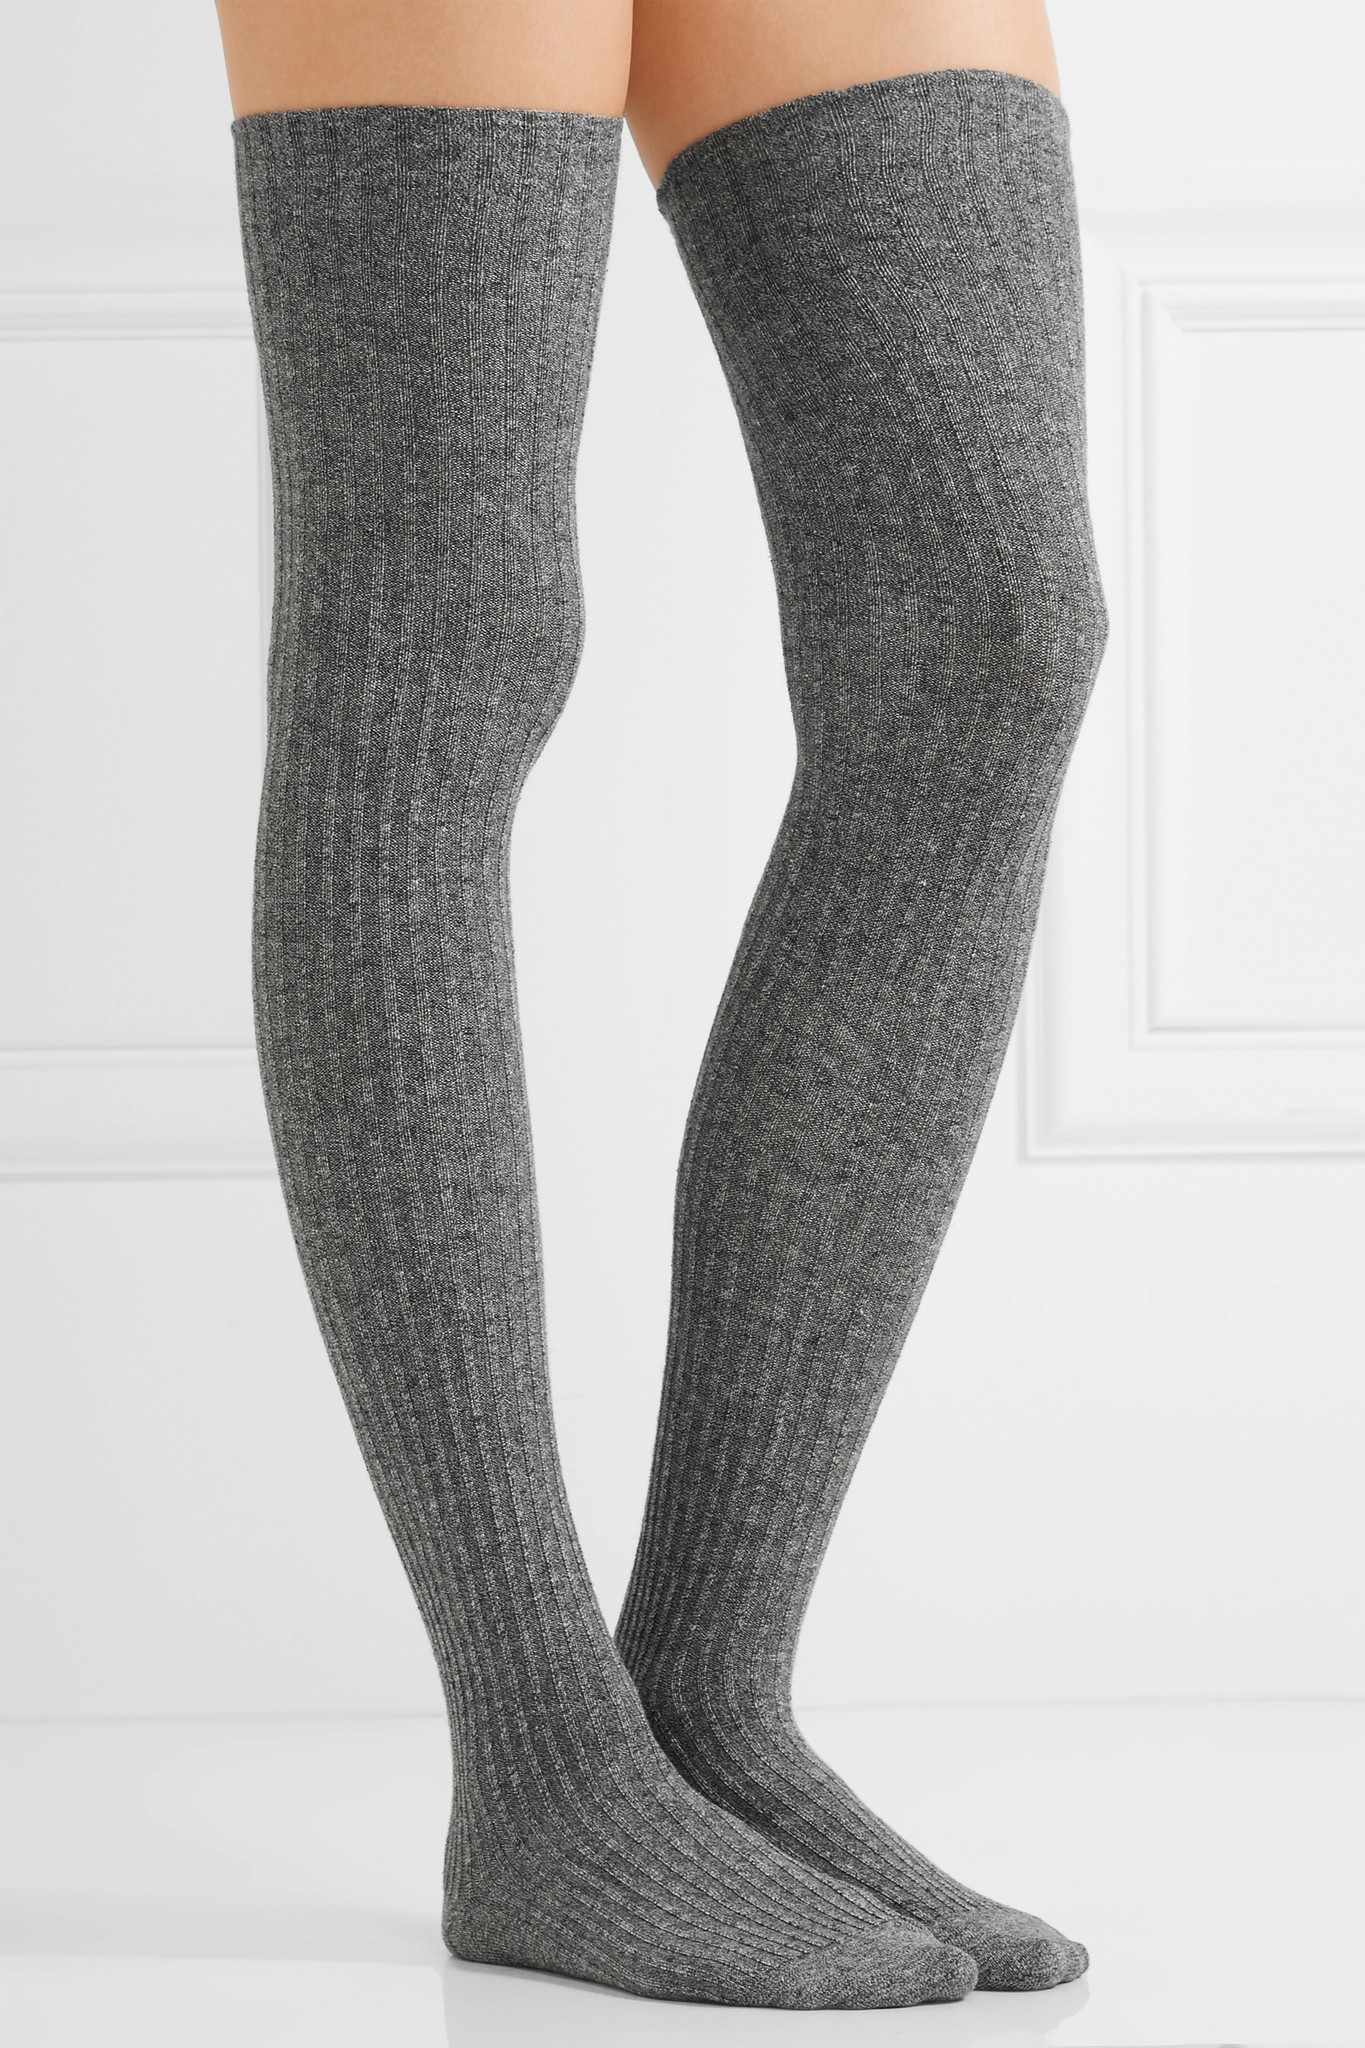 You searched for: grey knee socks! Etsy is the home to thousands of handmade, vintage, and one-of-a-kind products and gifts related to your search. No matter what you're looking for or where you are in the world, our global marketplace of sellers can help you find unique and affordable options. Let's get started!